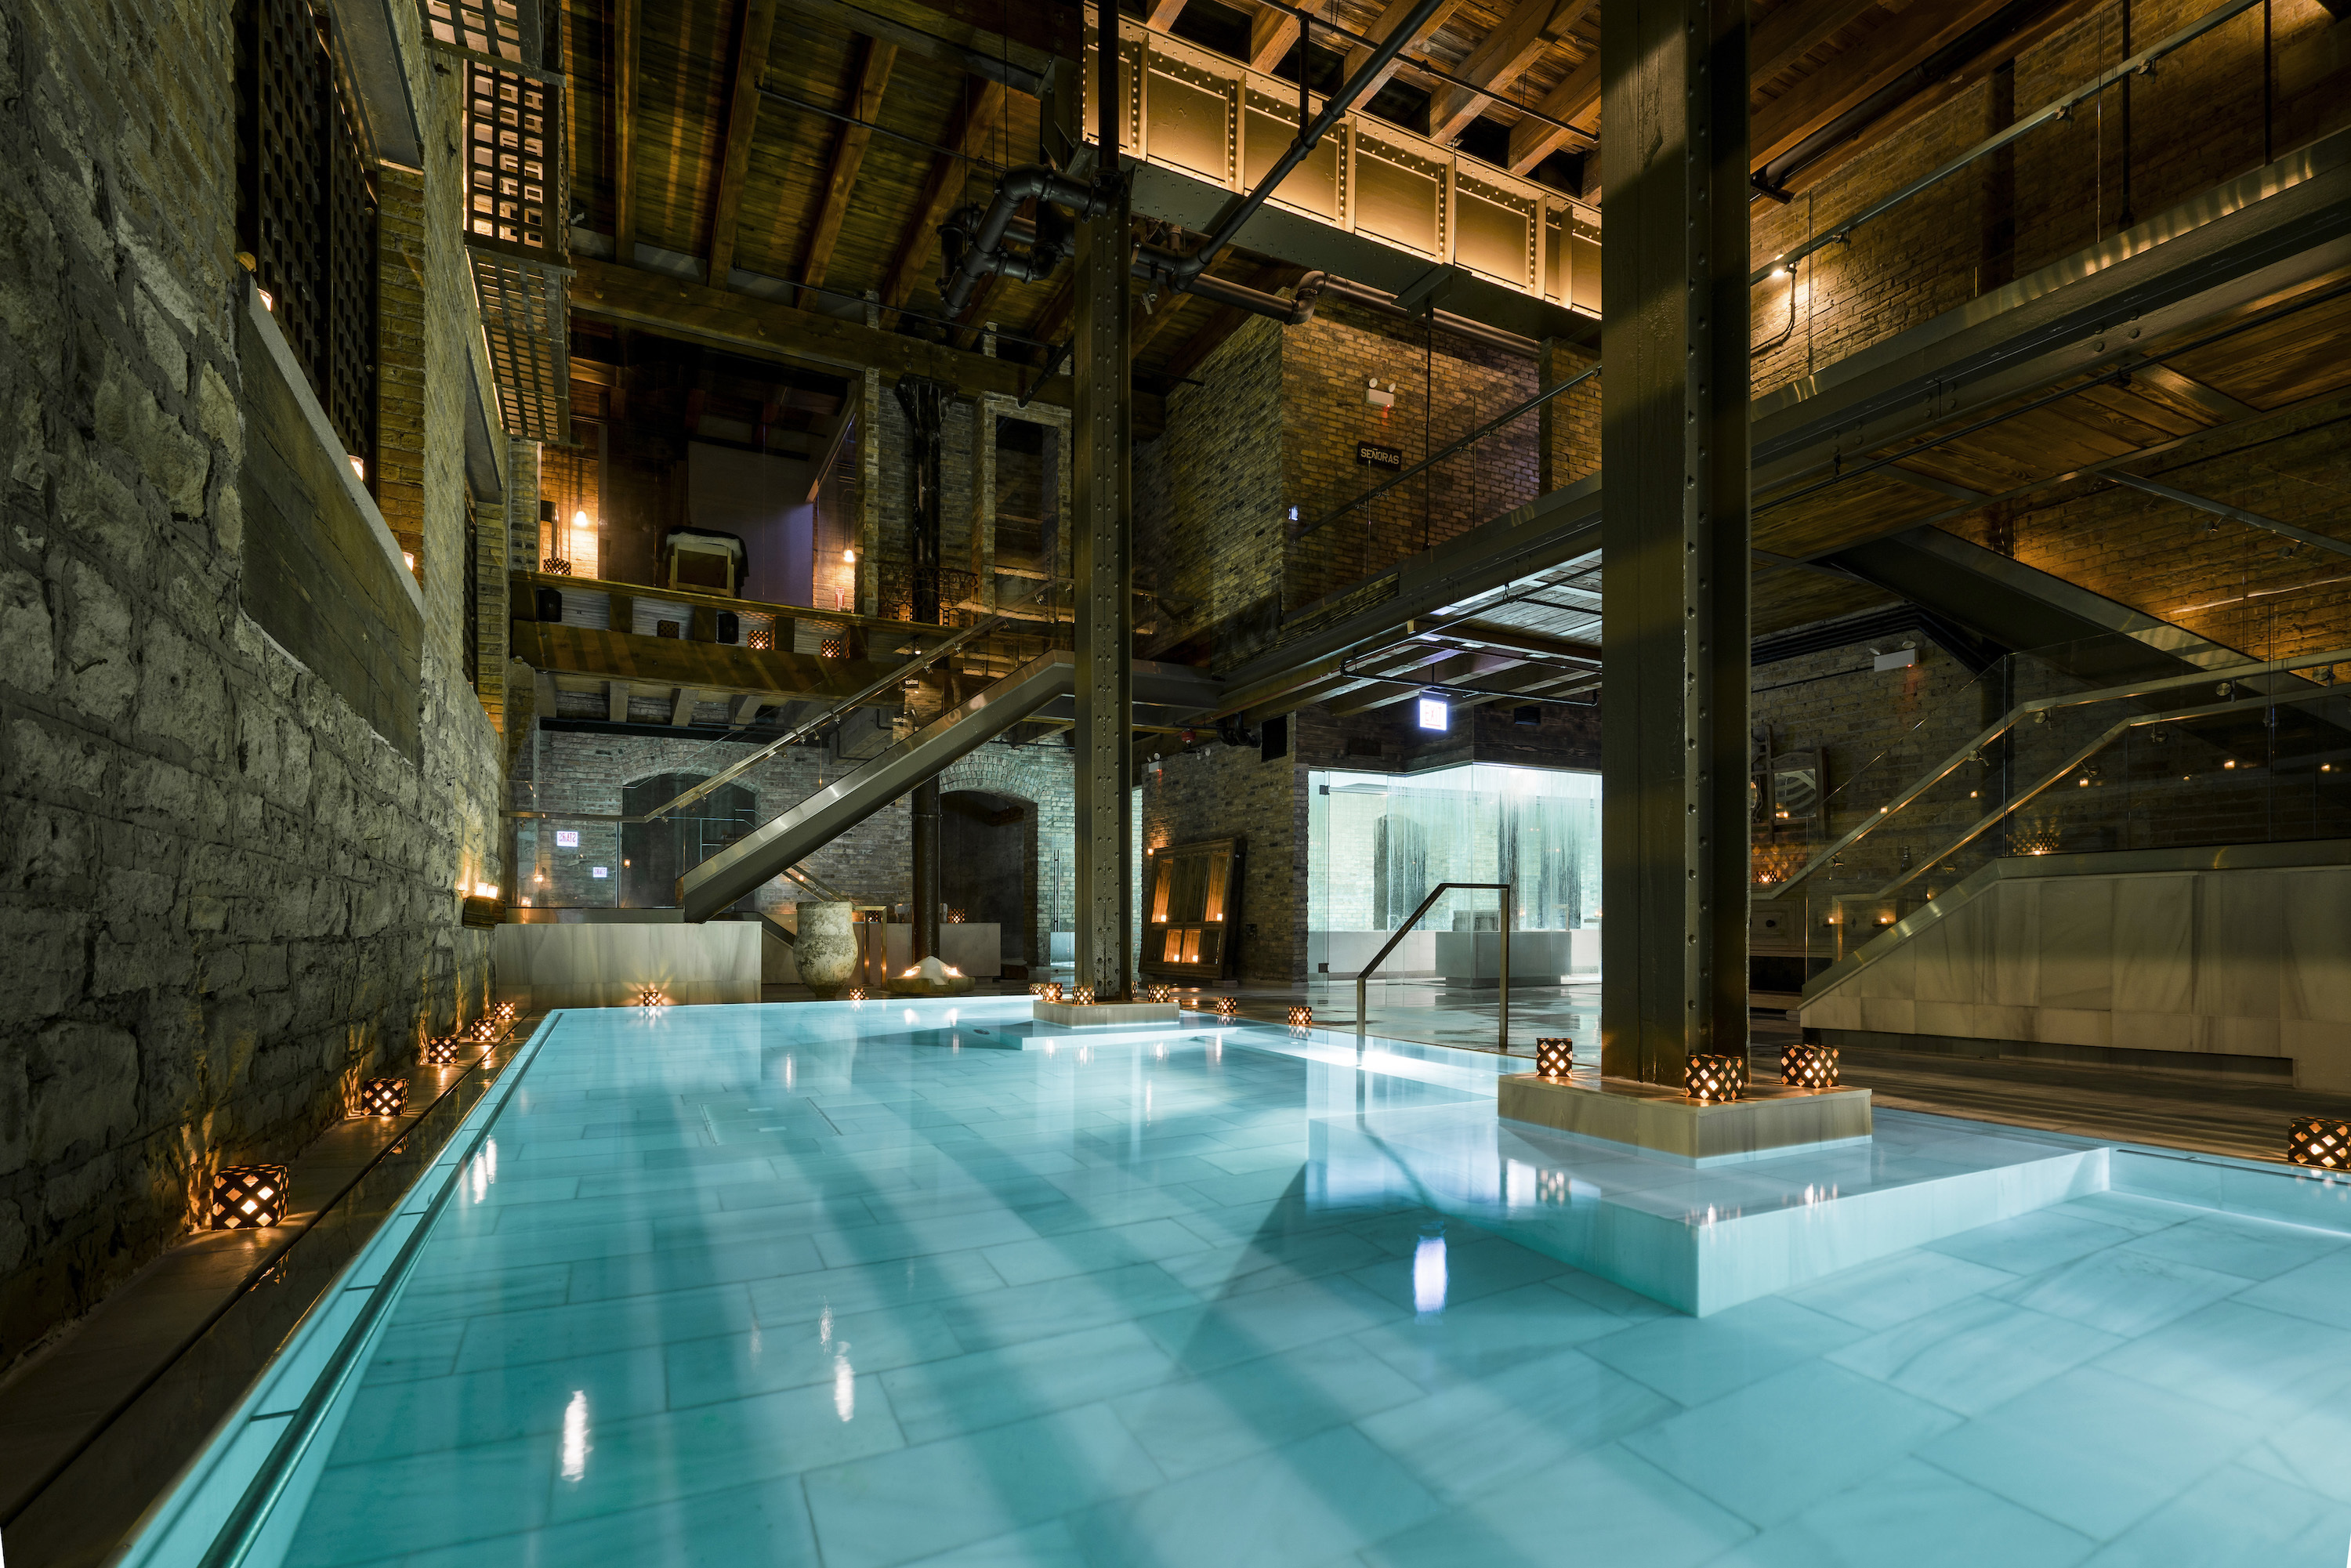 The 13 best spas in Chicago